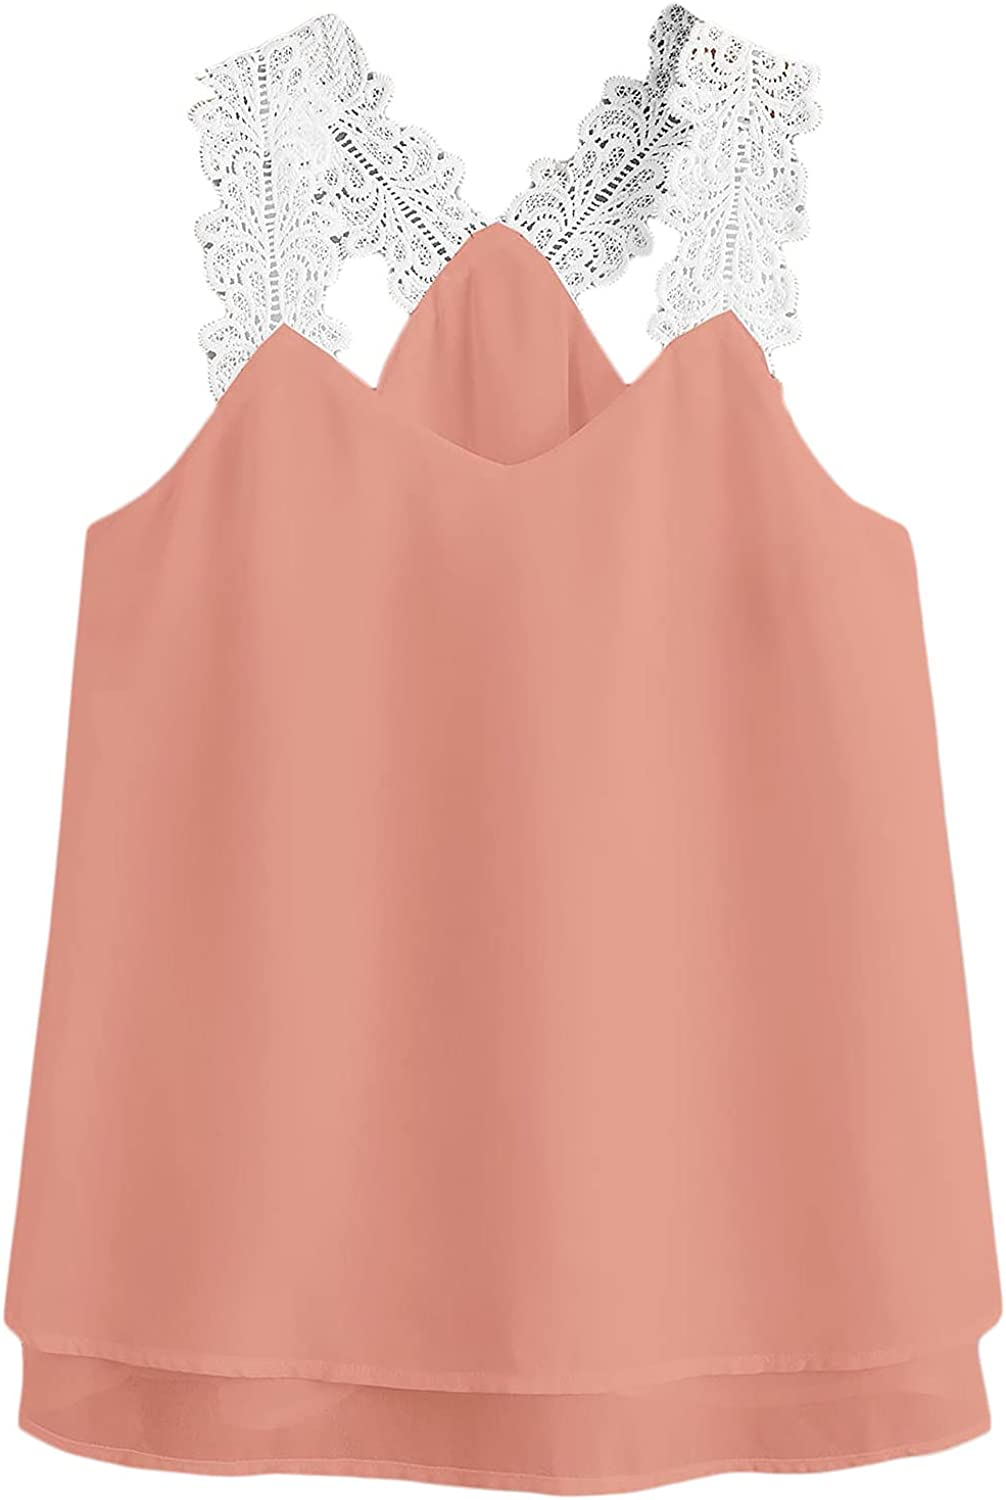 Floerns Women's Plus Size Floral Lace Straps Sleeveless Cami Tank Top